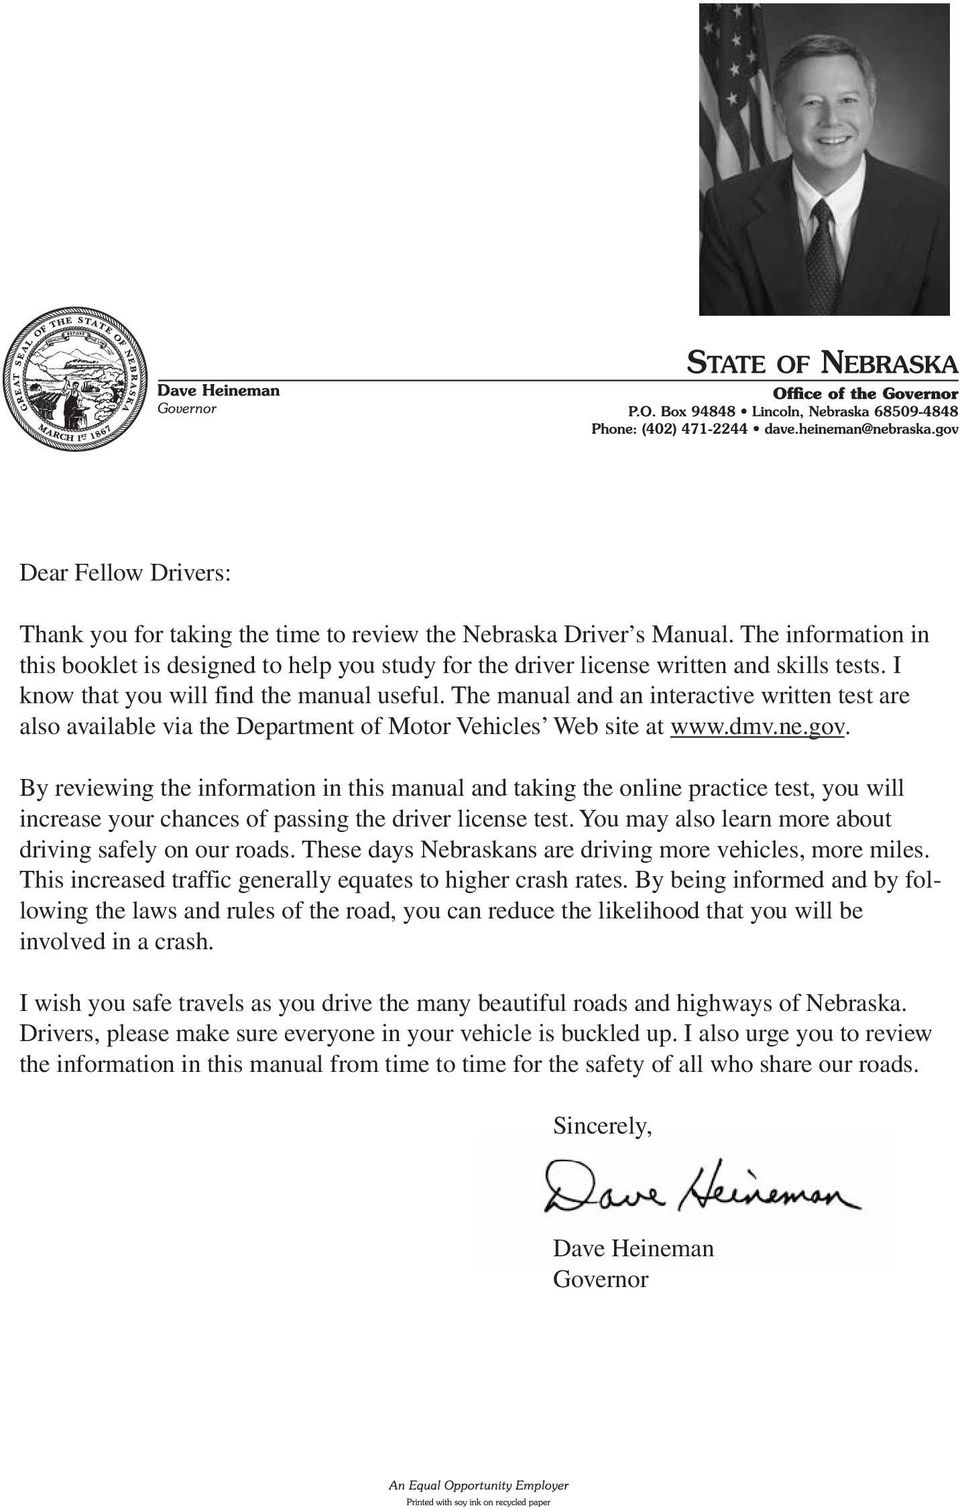 The manual and an interactive written test are also available via the Department of Motor Vehicles Web site at www.dmv.ne.gov.